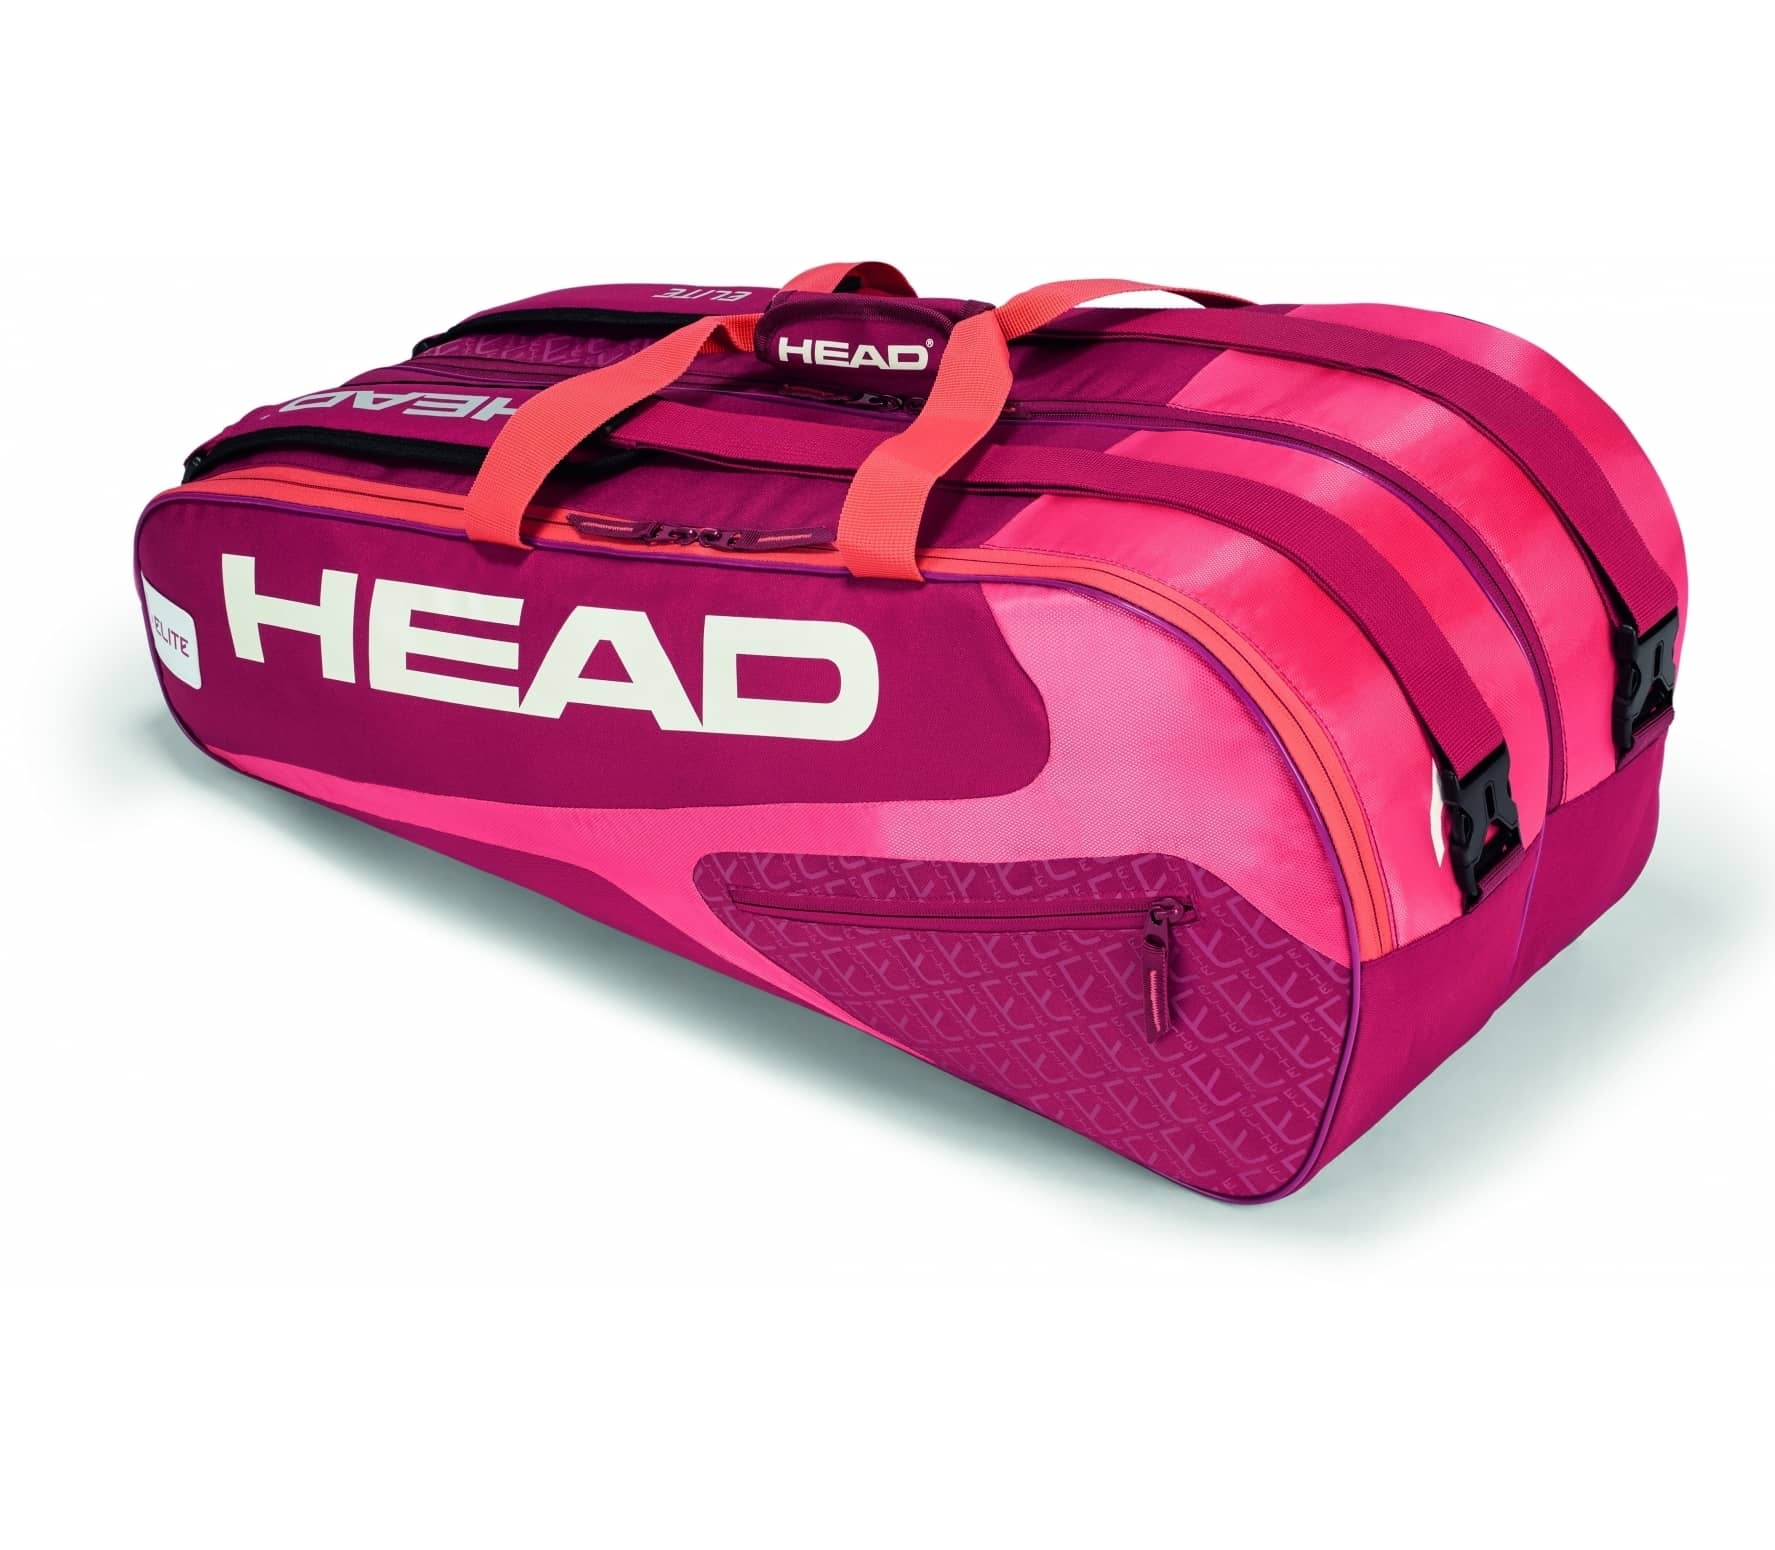 Head - Elite 9R Supercombi tennis bag (red/pink)